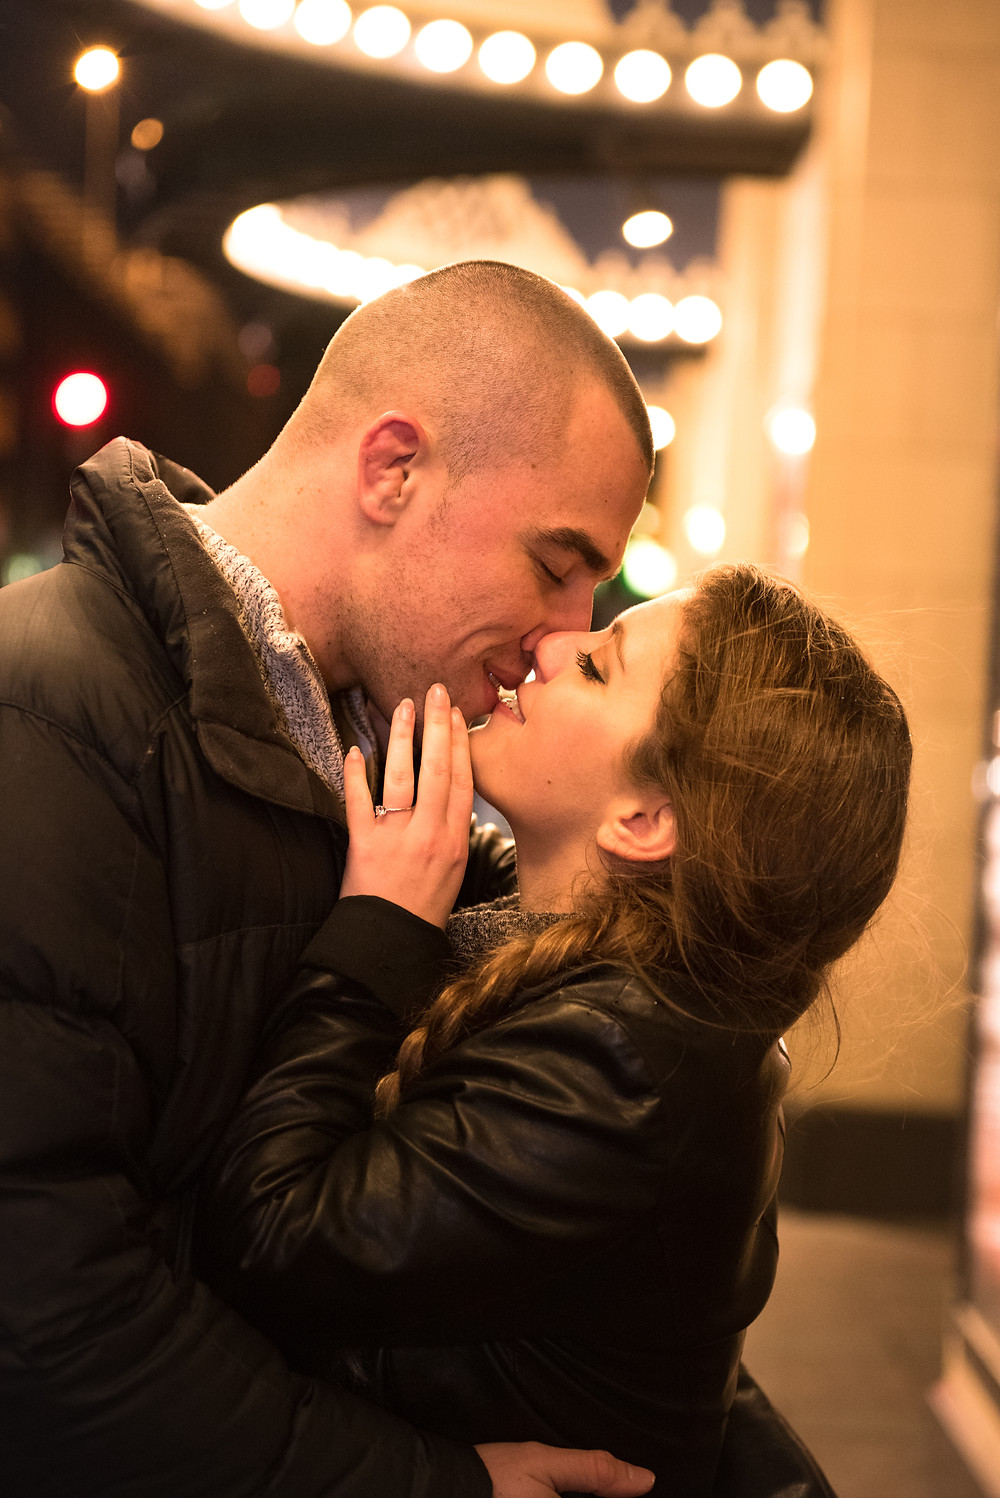 A winter engagement session in Pittsburgh, PA. Couple photographed leaning in for a kiss.